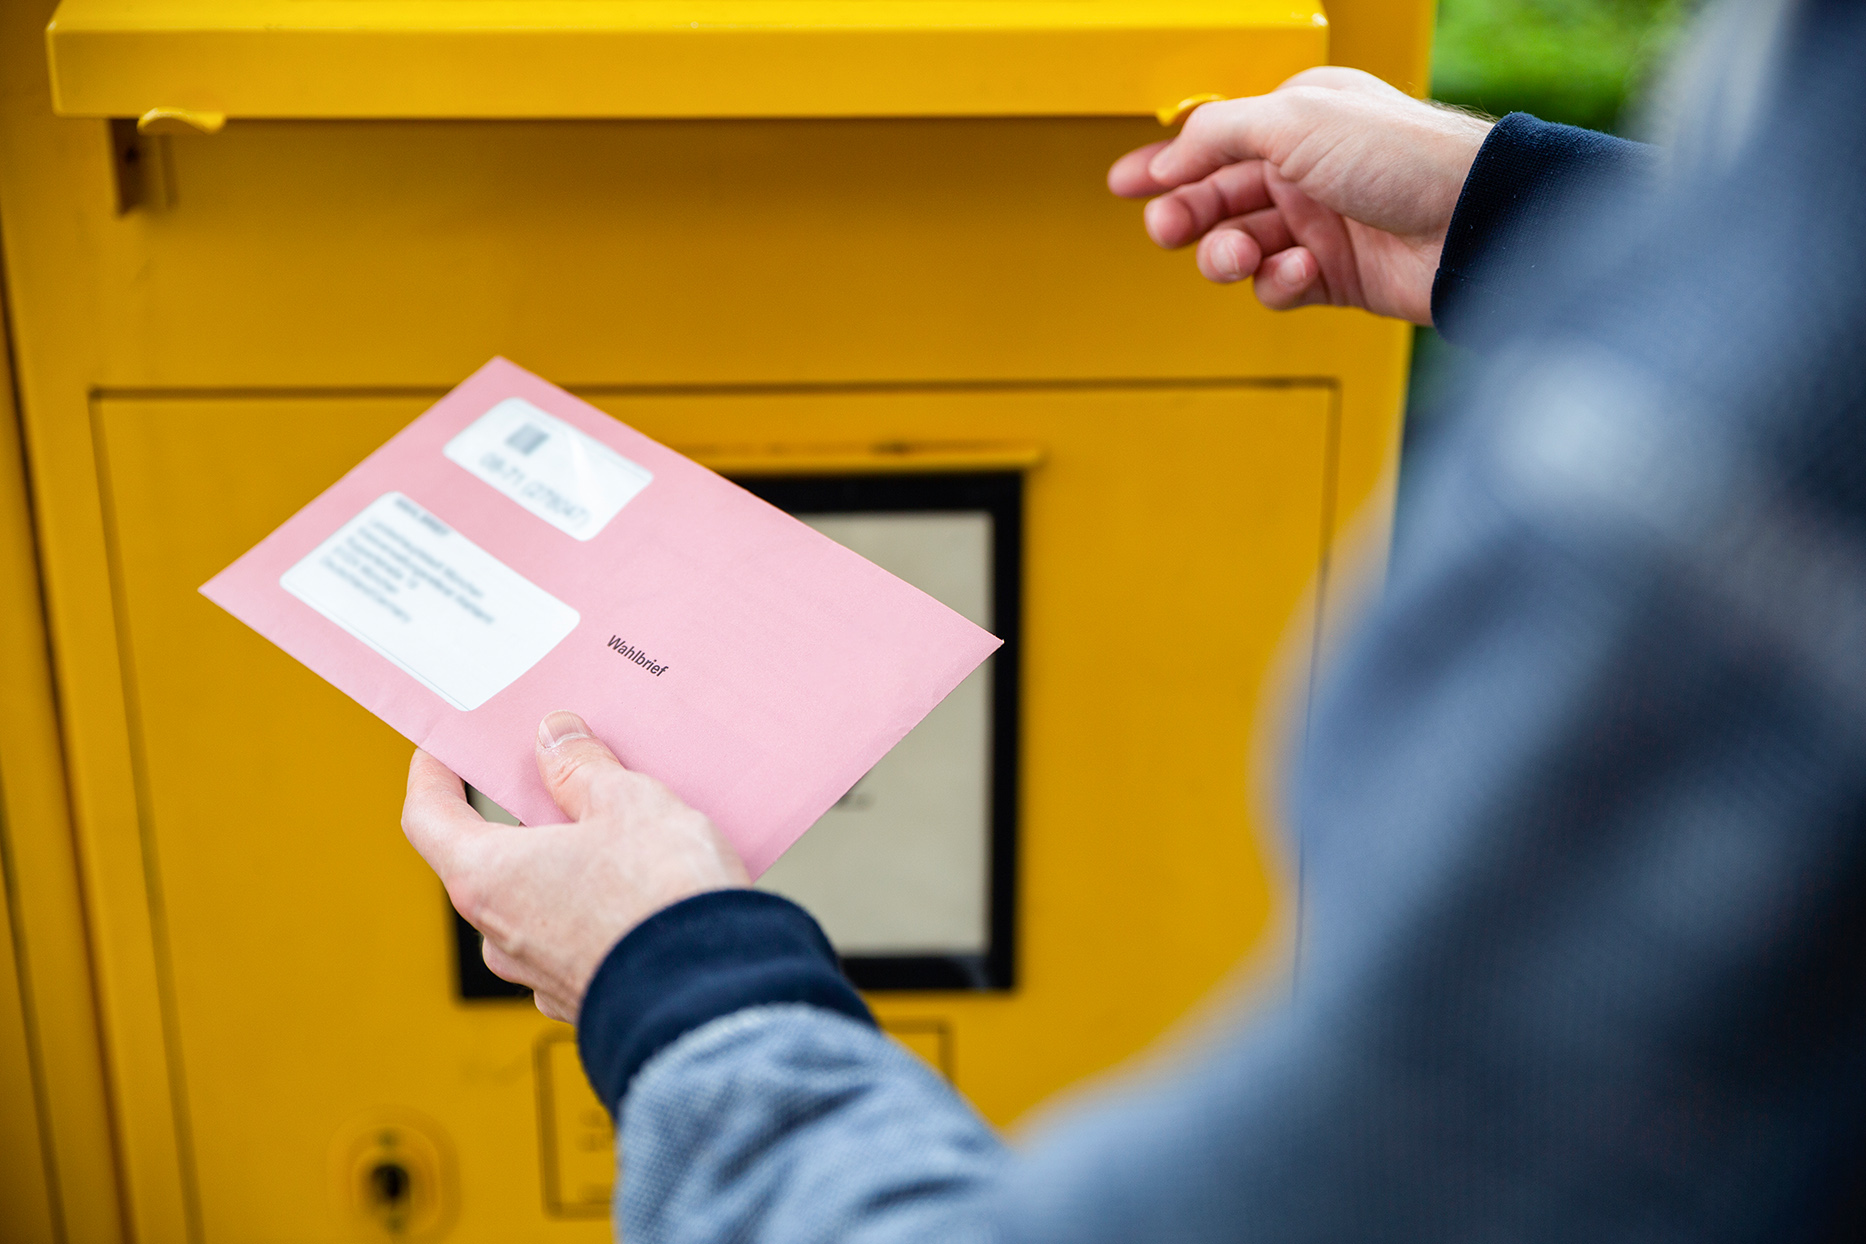 Elector holding documtents for the postal vote in front of the mailbox